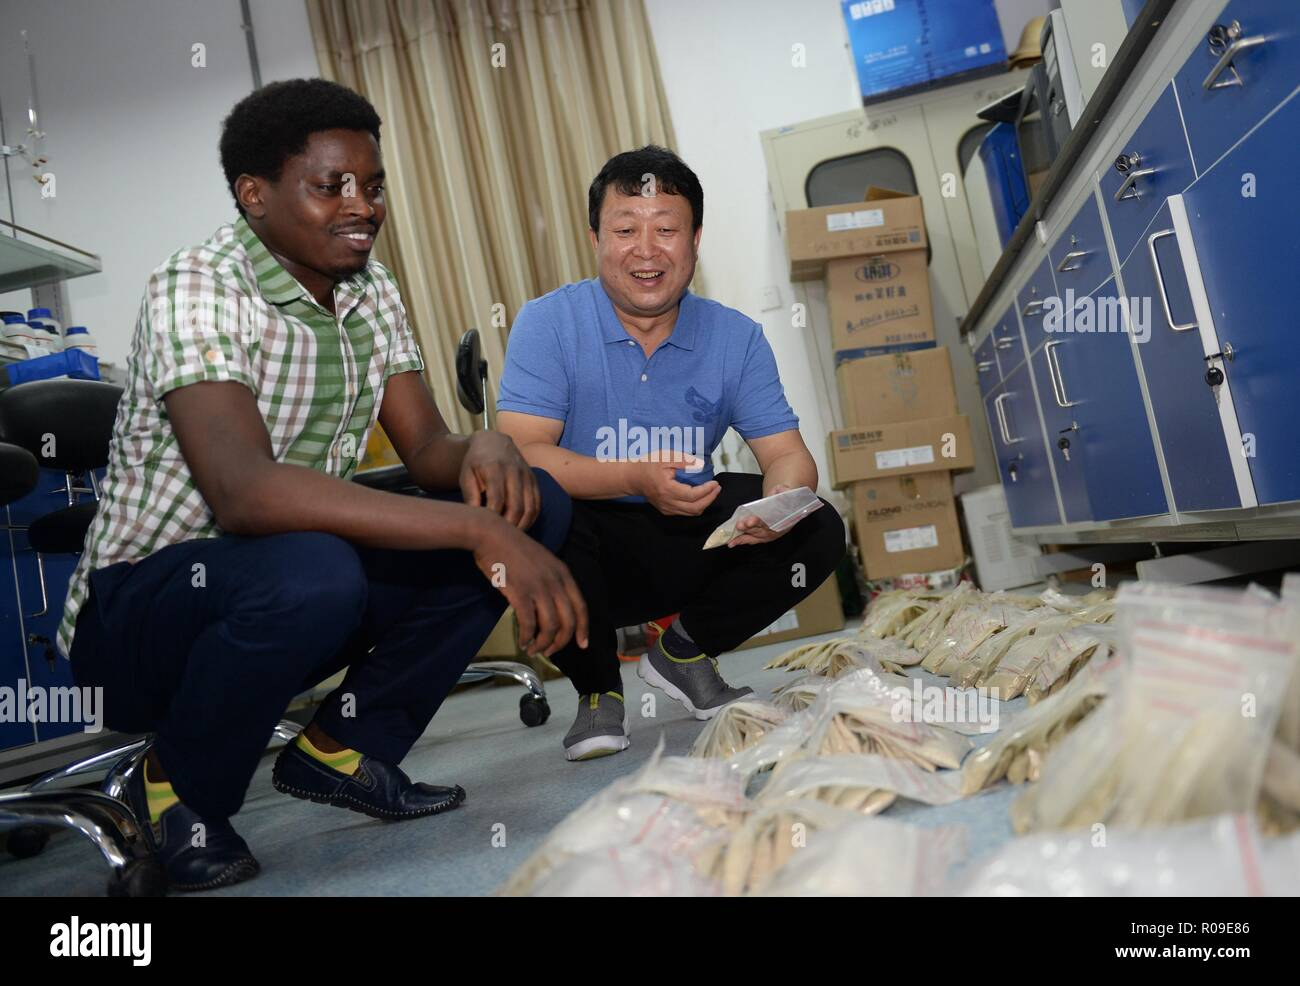 Xi'an, China's Shaanxi Province. 3rd Sep, 2018. Rwandan student Efienne Niyigabas (L) receives assignment from Hai Jiangbo, an associate professor with Northwest Agriculture and Forestry University, at a laborotary of the College of Agronomy in the university in Yangling, northwest China's Shaanxi Province, Sept. 3, 2018. Credit: Li Yibo/Xinhua/Alamy Live News - Stock Image